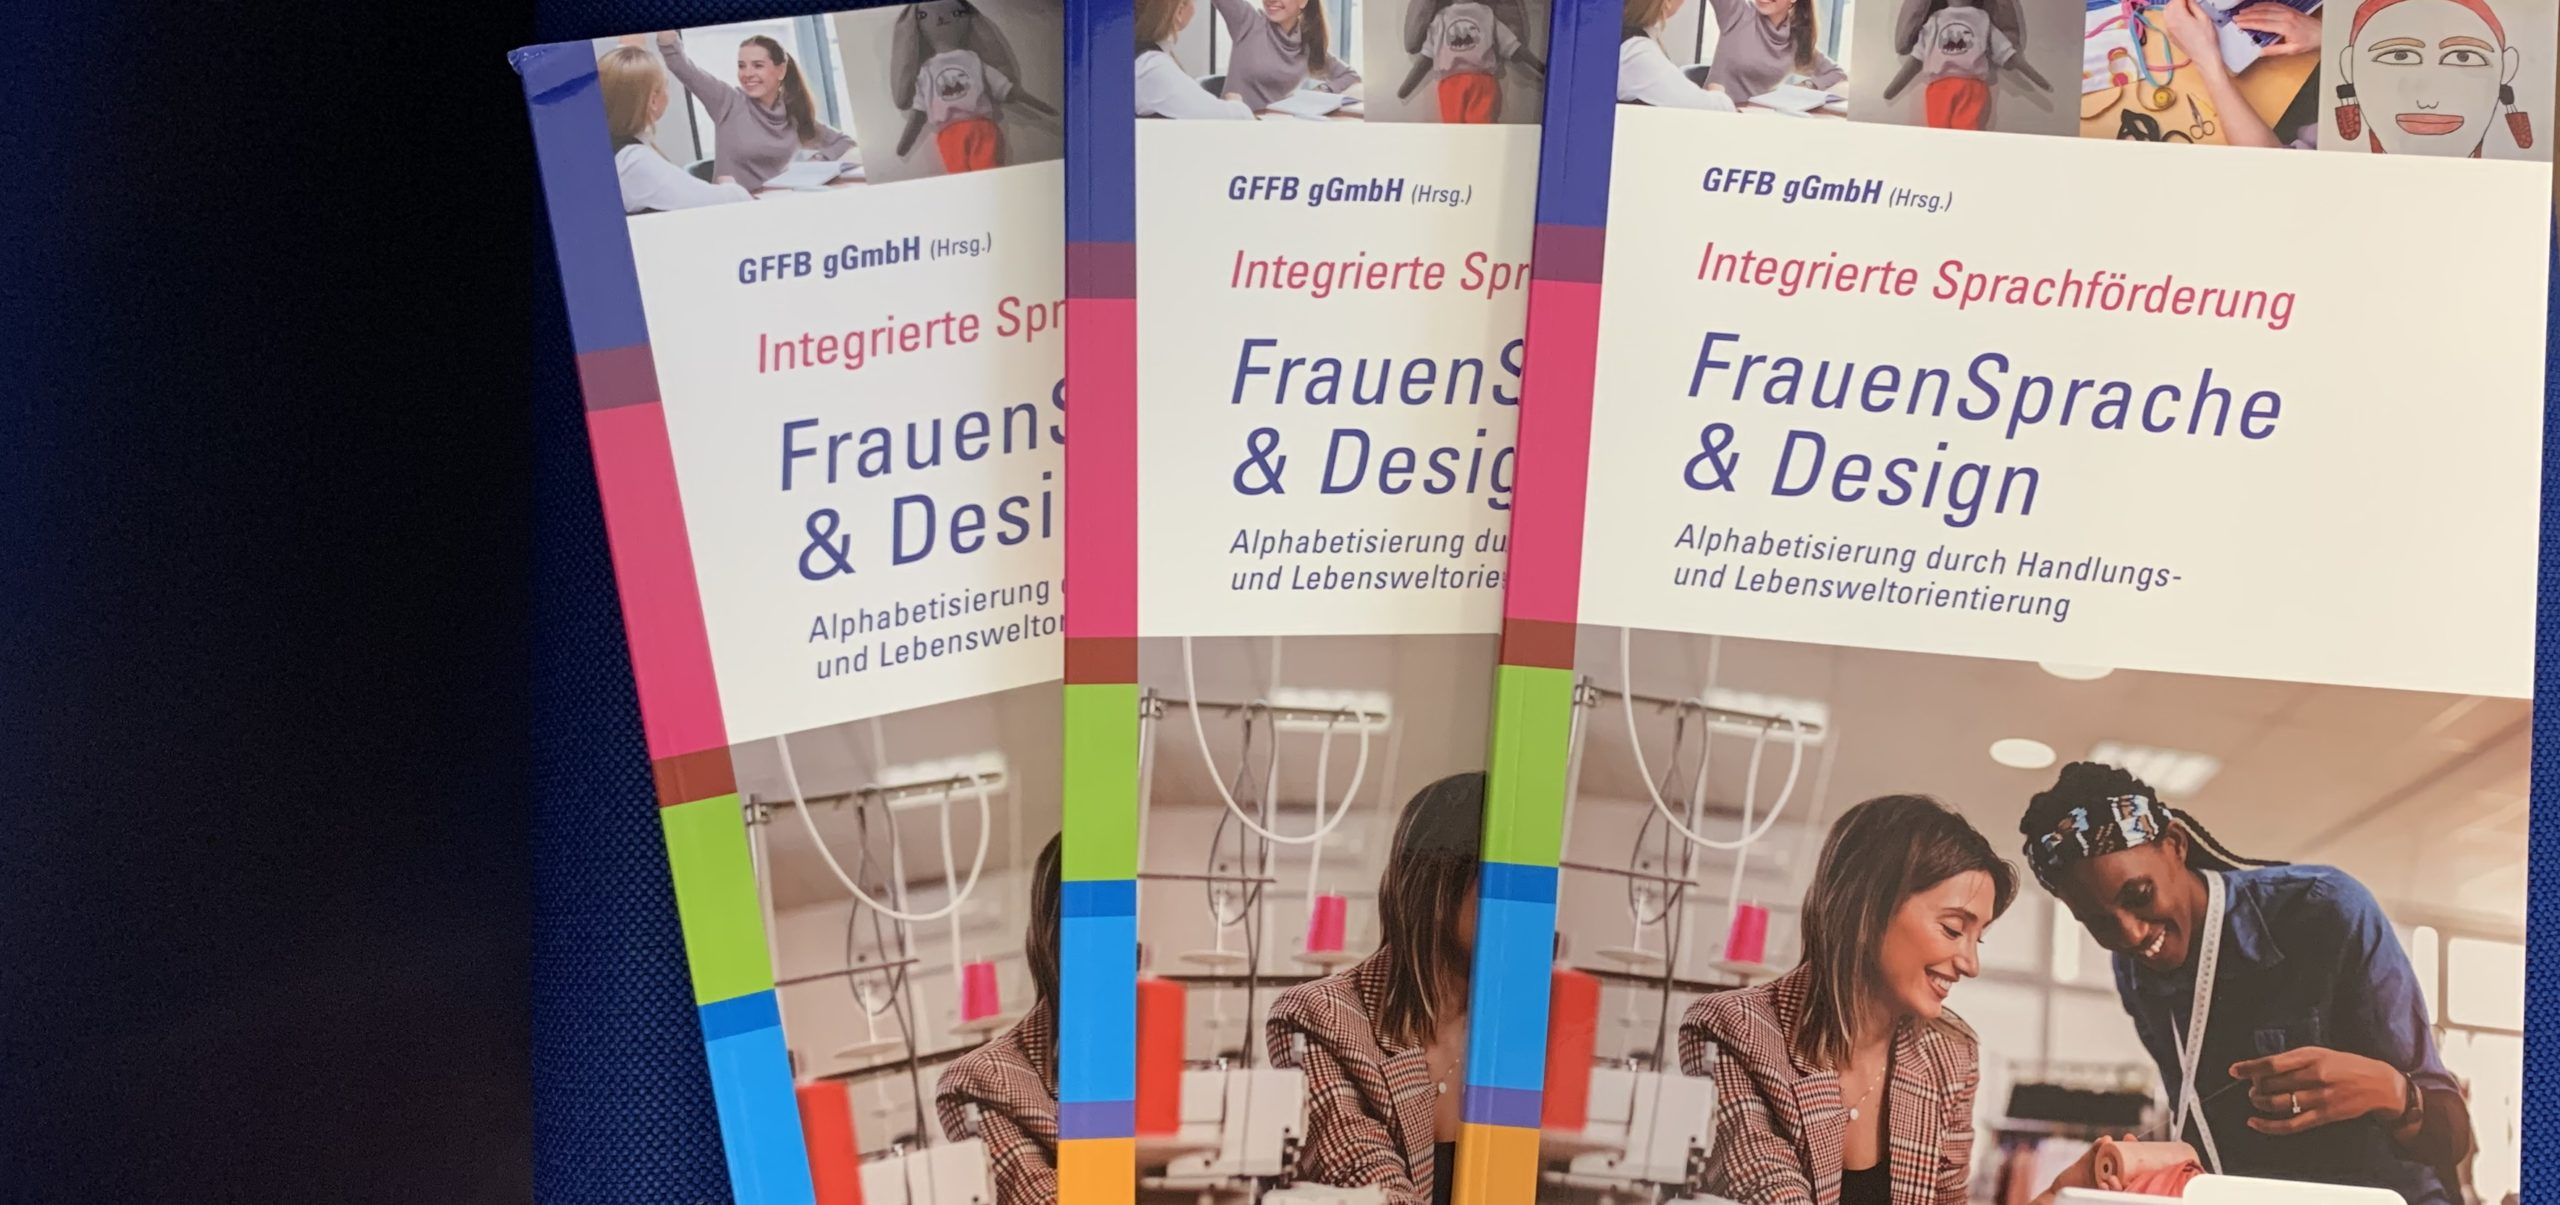 FrauenSprache & Design Publikation